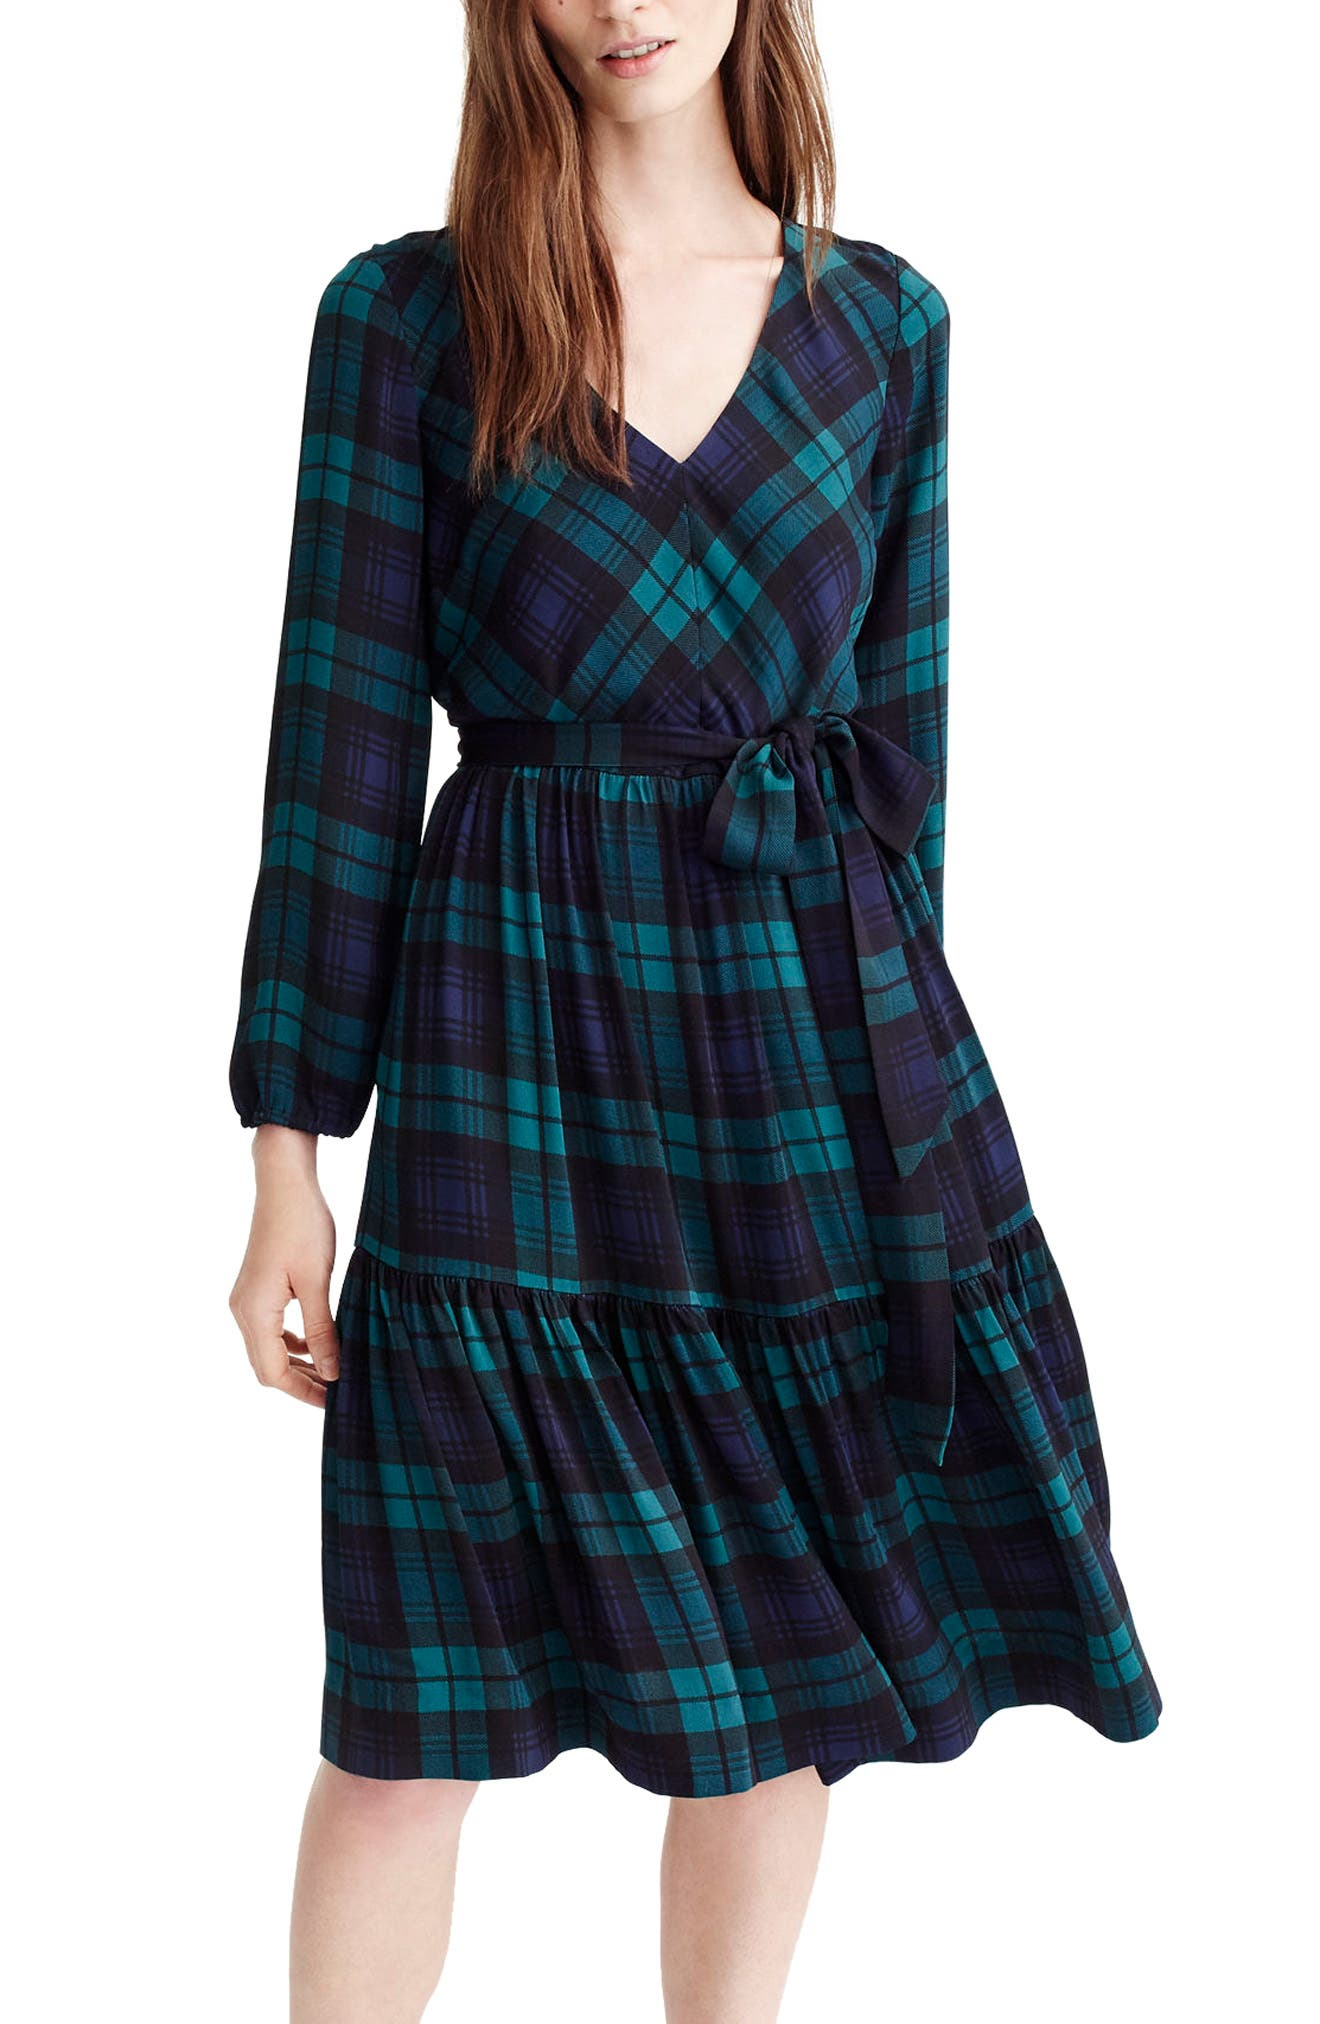 J.Crew Drapey Dress in Black Watch Plaid,                         Main,                         color, Blue/ Green